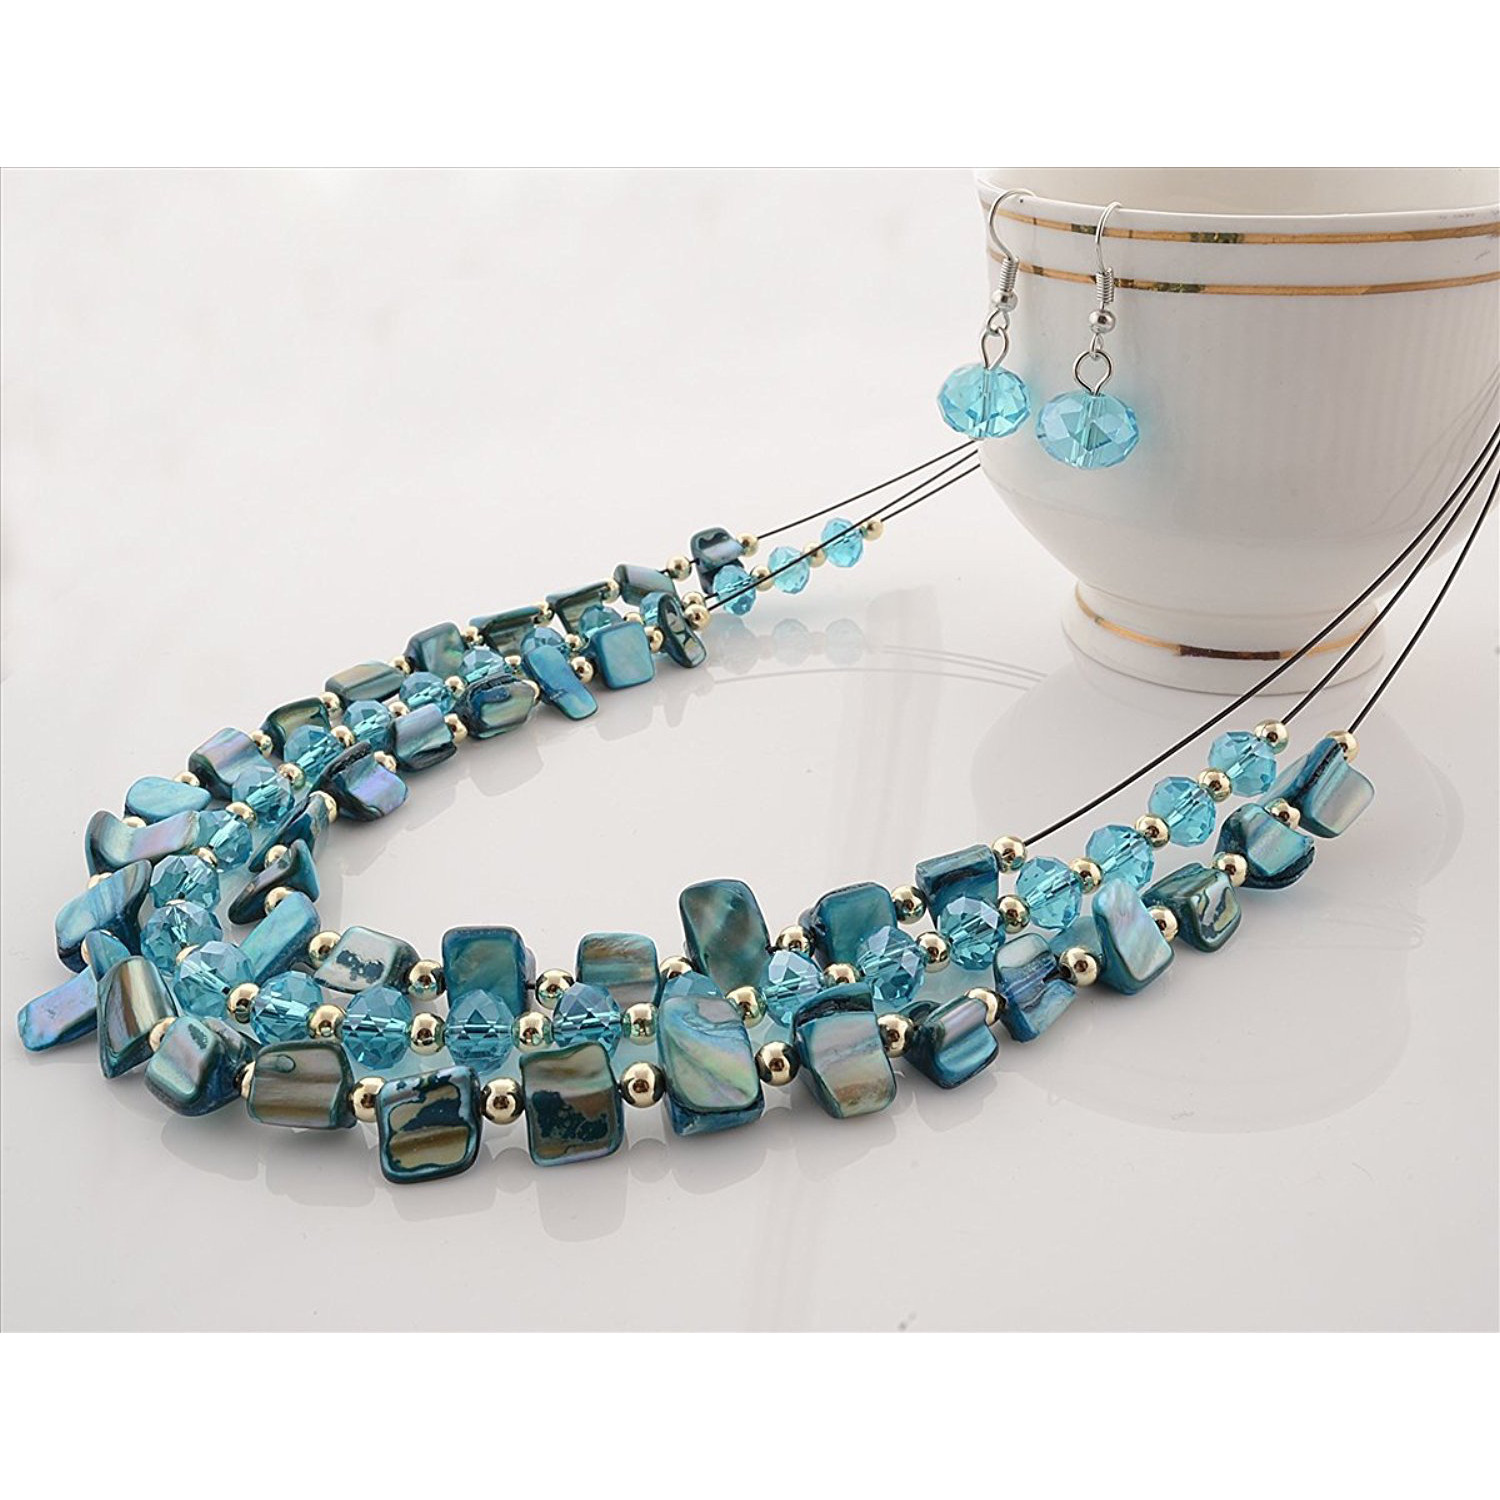 Zephyrr Fashion Multi Strand Necklace Earrings Set Handmade Blue Beads: Jewelry